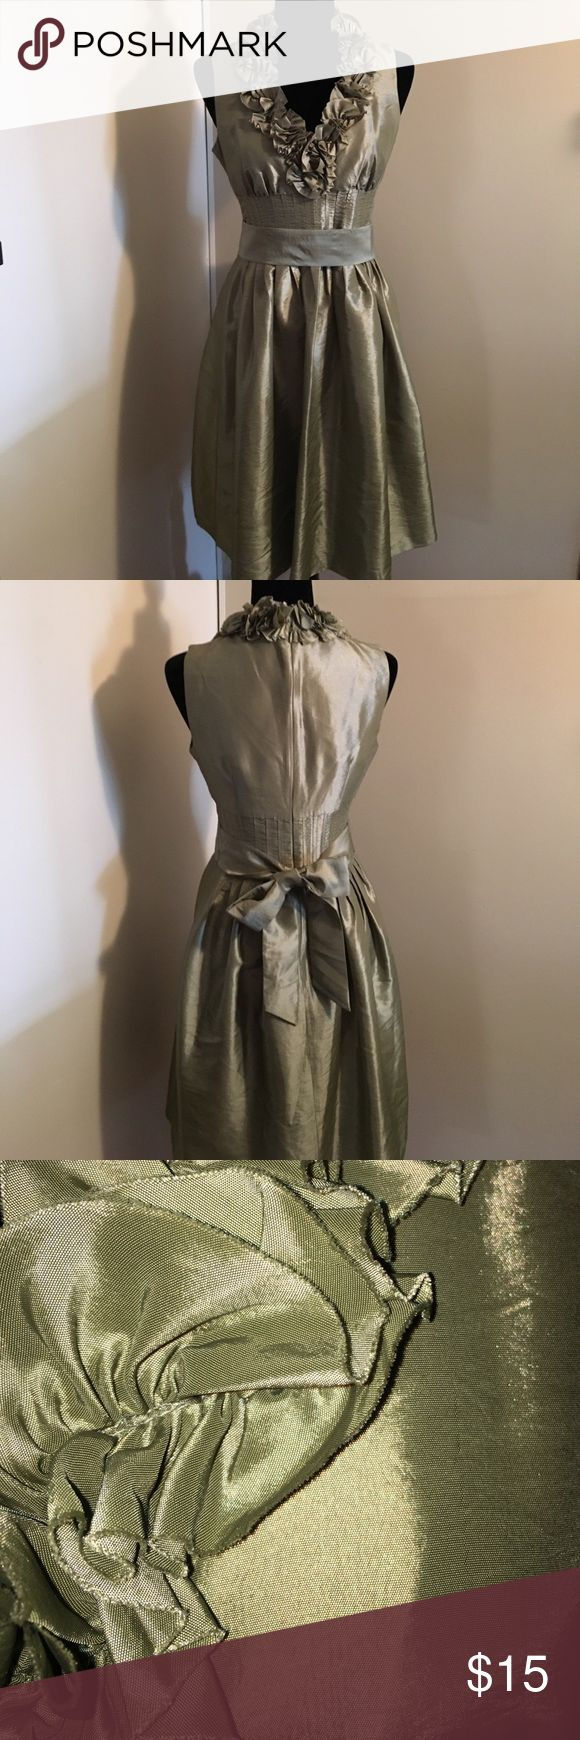 Beautiful cocktail dress This dress would be great for just about any cocktail event. Especially with the holiday coming. Sz 6. Fully lined. Hidden back zipper and hook eye at neck. 50% polyester 50% nylon. Color is a sage green shown best in last photo. London Times Dresses Wedding